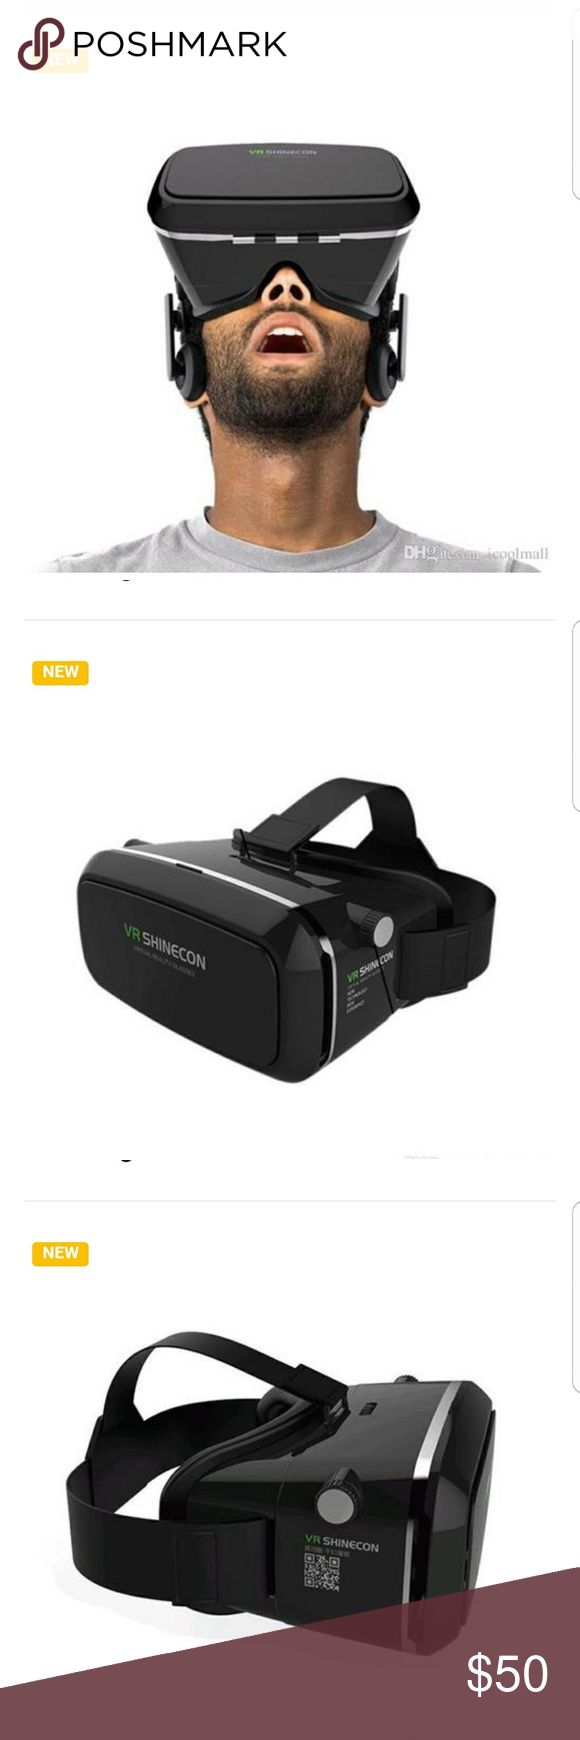 3D Glasses Virtual Reality Game for any smartphone Features:  1)High-precision lens provides a clearer picture and a better view for great 3D cinema experience. 2) Adjustable eye distance and Pupil distance. 3) Compatible with 3.5' x 6' cell phones. 4) Made of high quality and environment-friendly ABS material. 5) Flexible and adjustable headband for comfortable wearing. 6) Package includes: 3D virtual reality glasses x 1, user manual x 1 Other